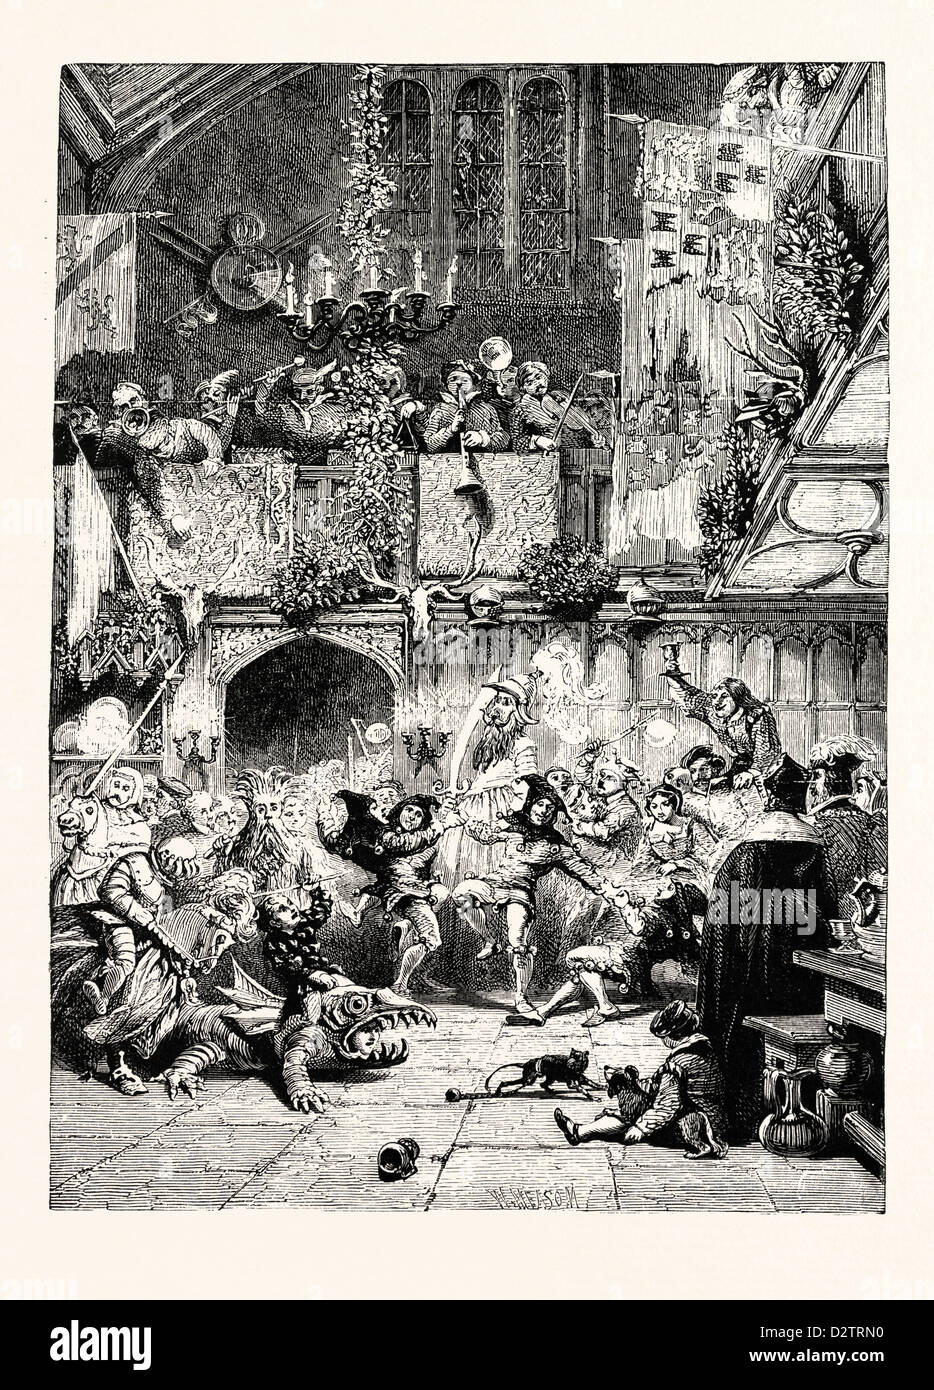 TUDOR TIMES: CHRISTMAS REVELS IN THE BARONIAL HALL. - Stock Image